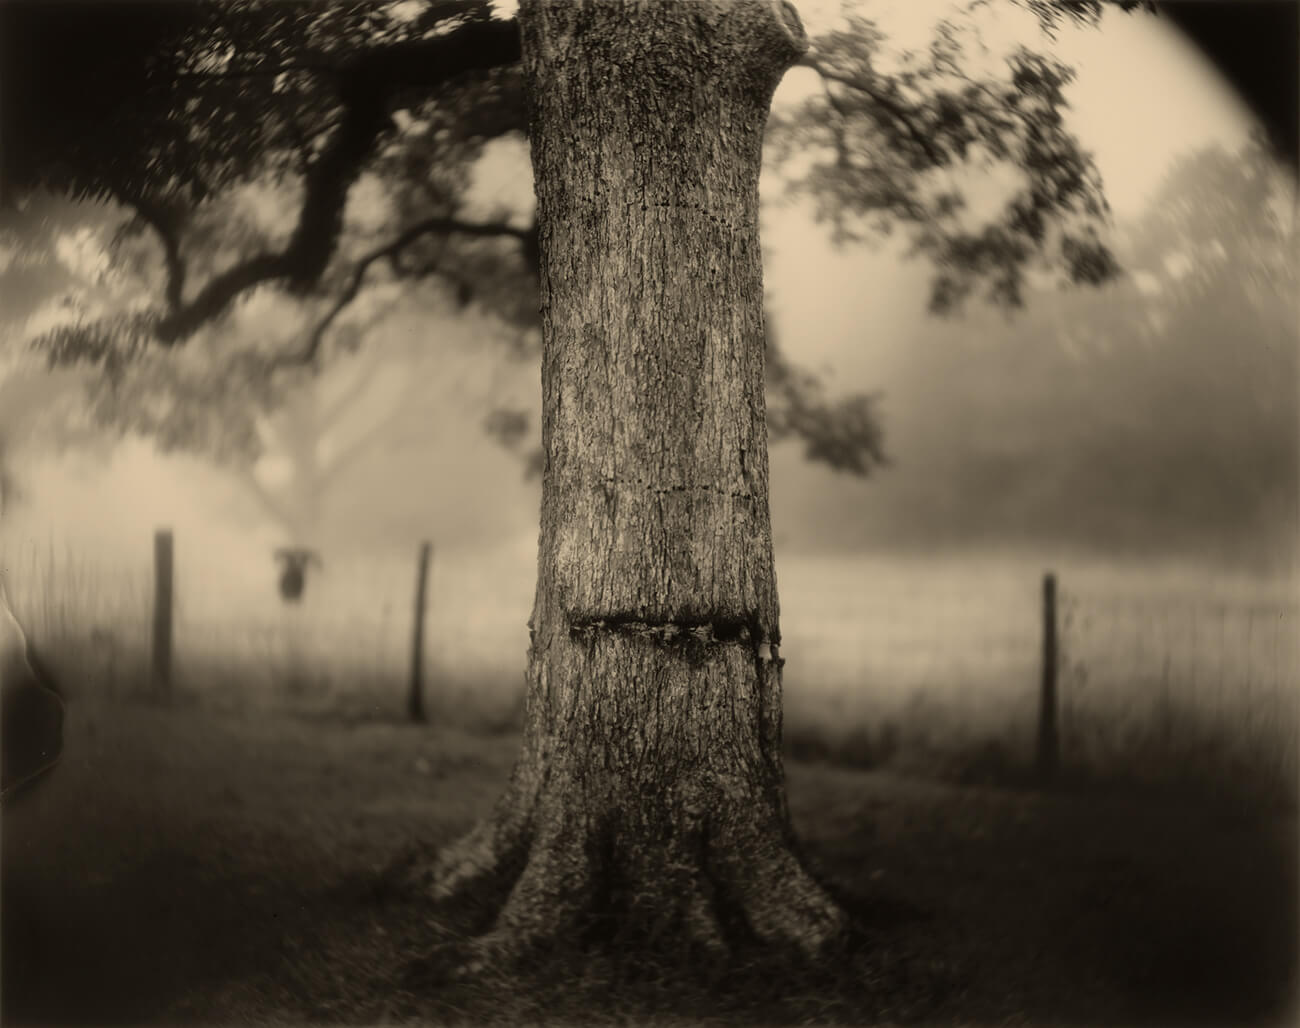 Black and white photo of the trunk of a tree, with a vertical line of damage along the bark.